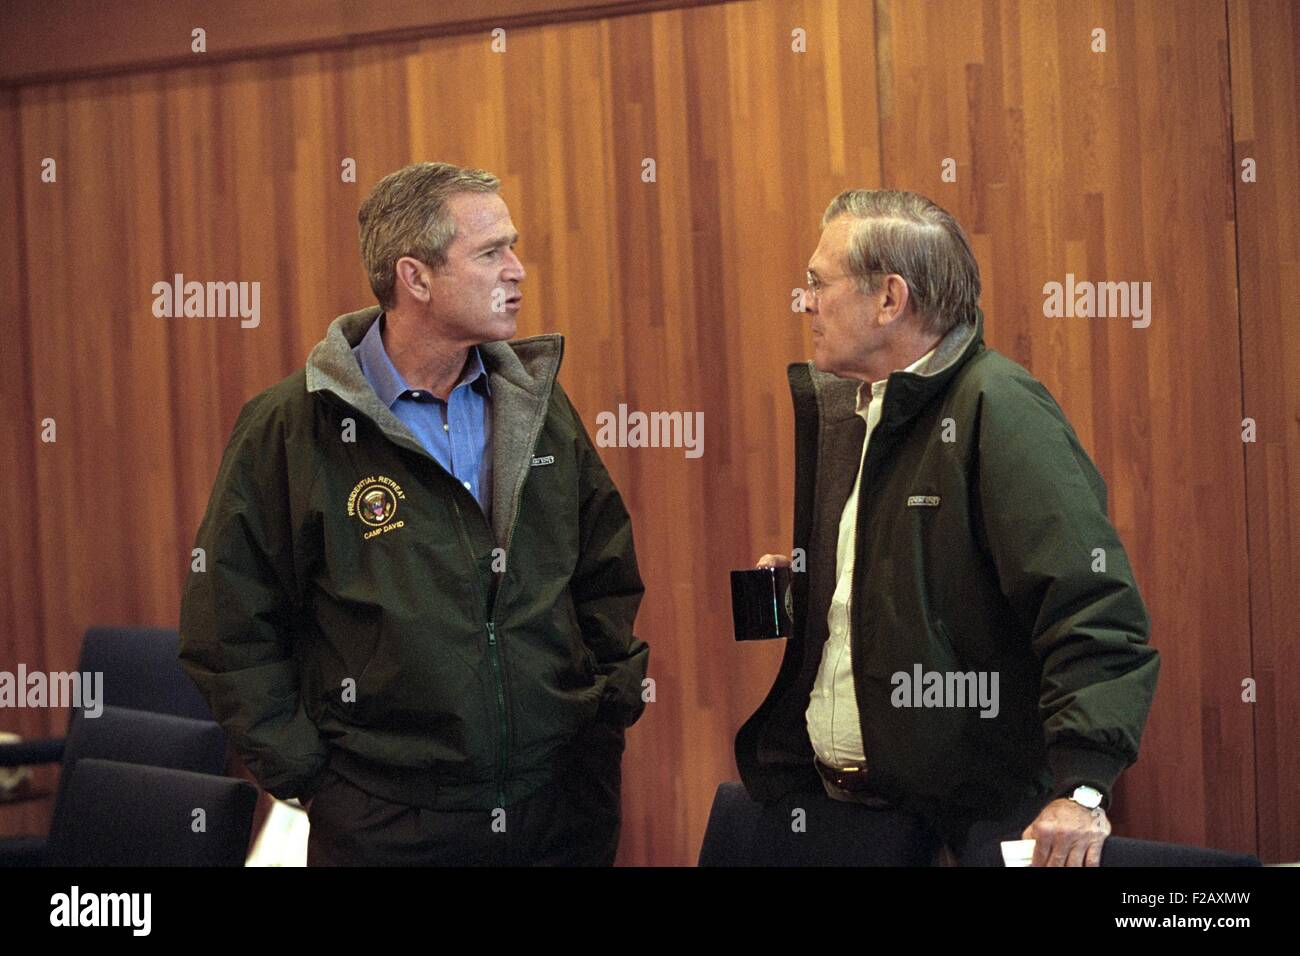 Pres. George W. Bush with Sec. of Defense Donald Rumsfeld, Sept. 15, 2001. They are on a break during a National - Stock Image